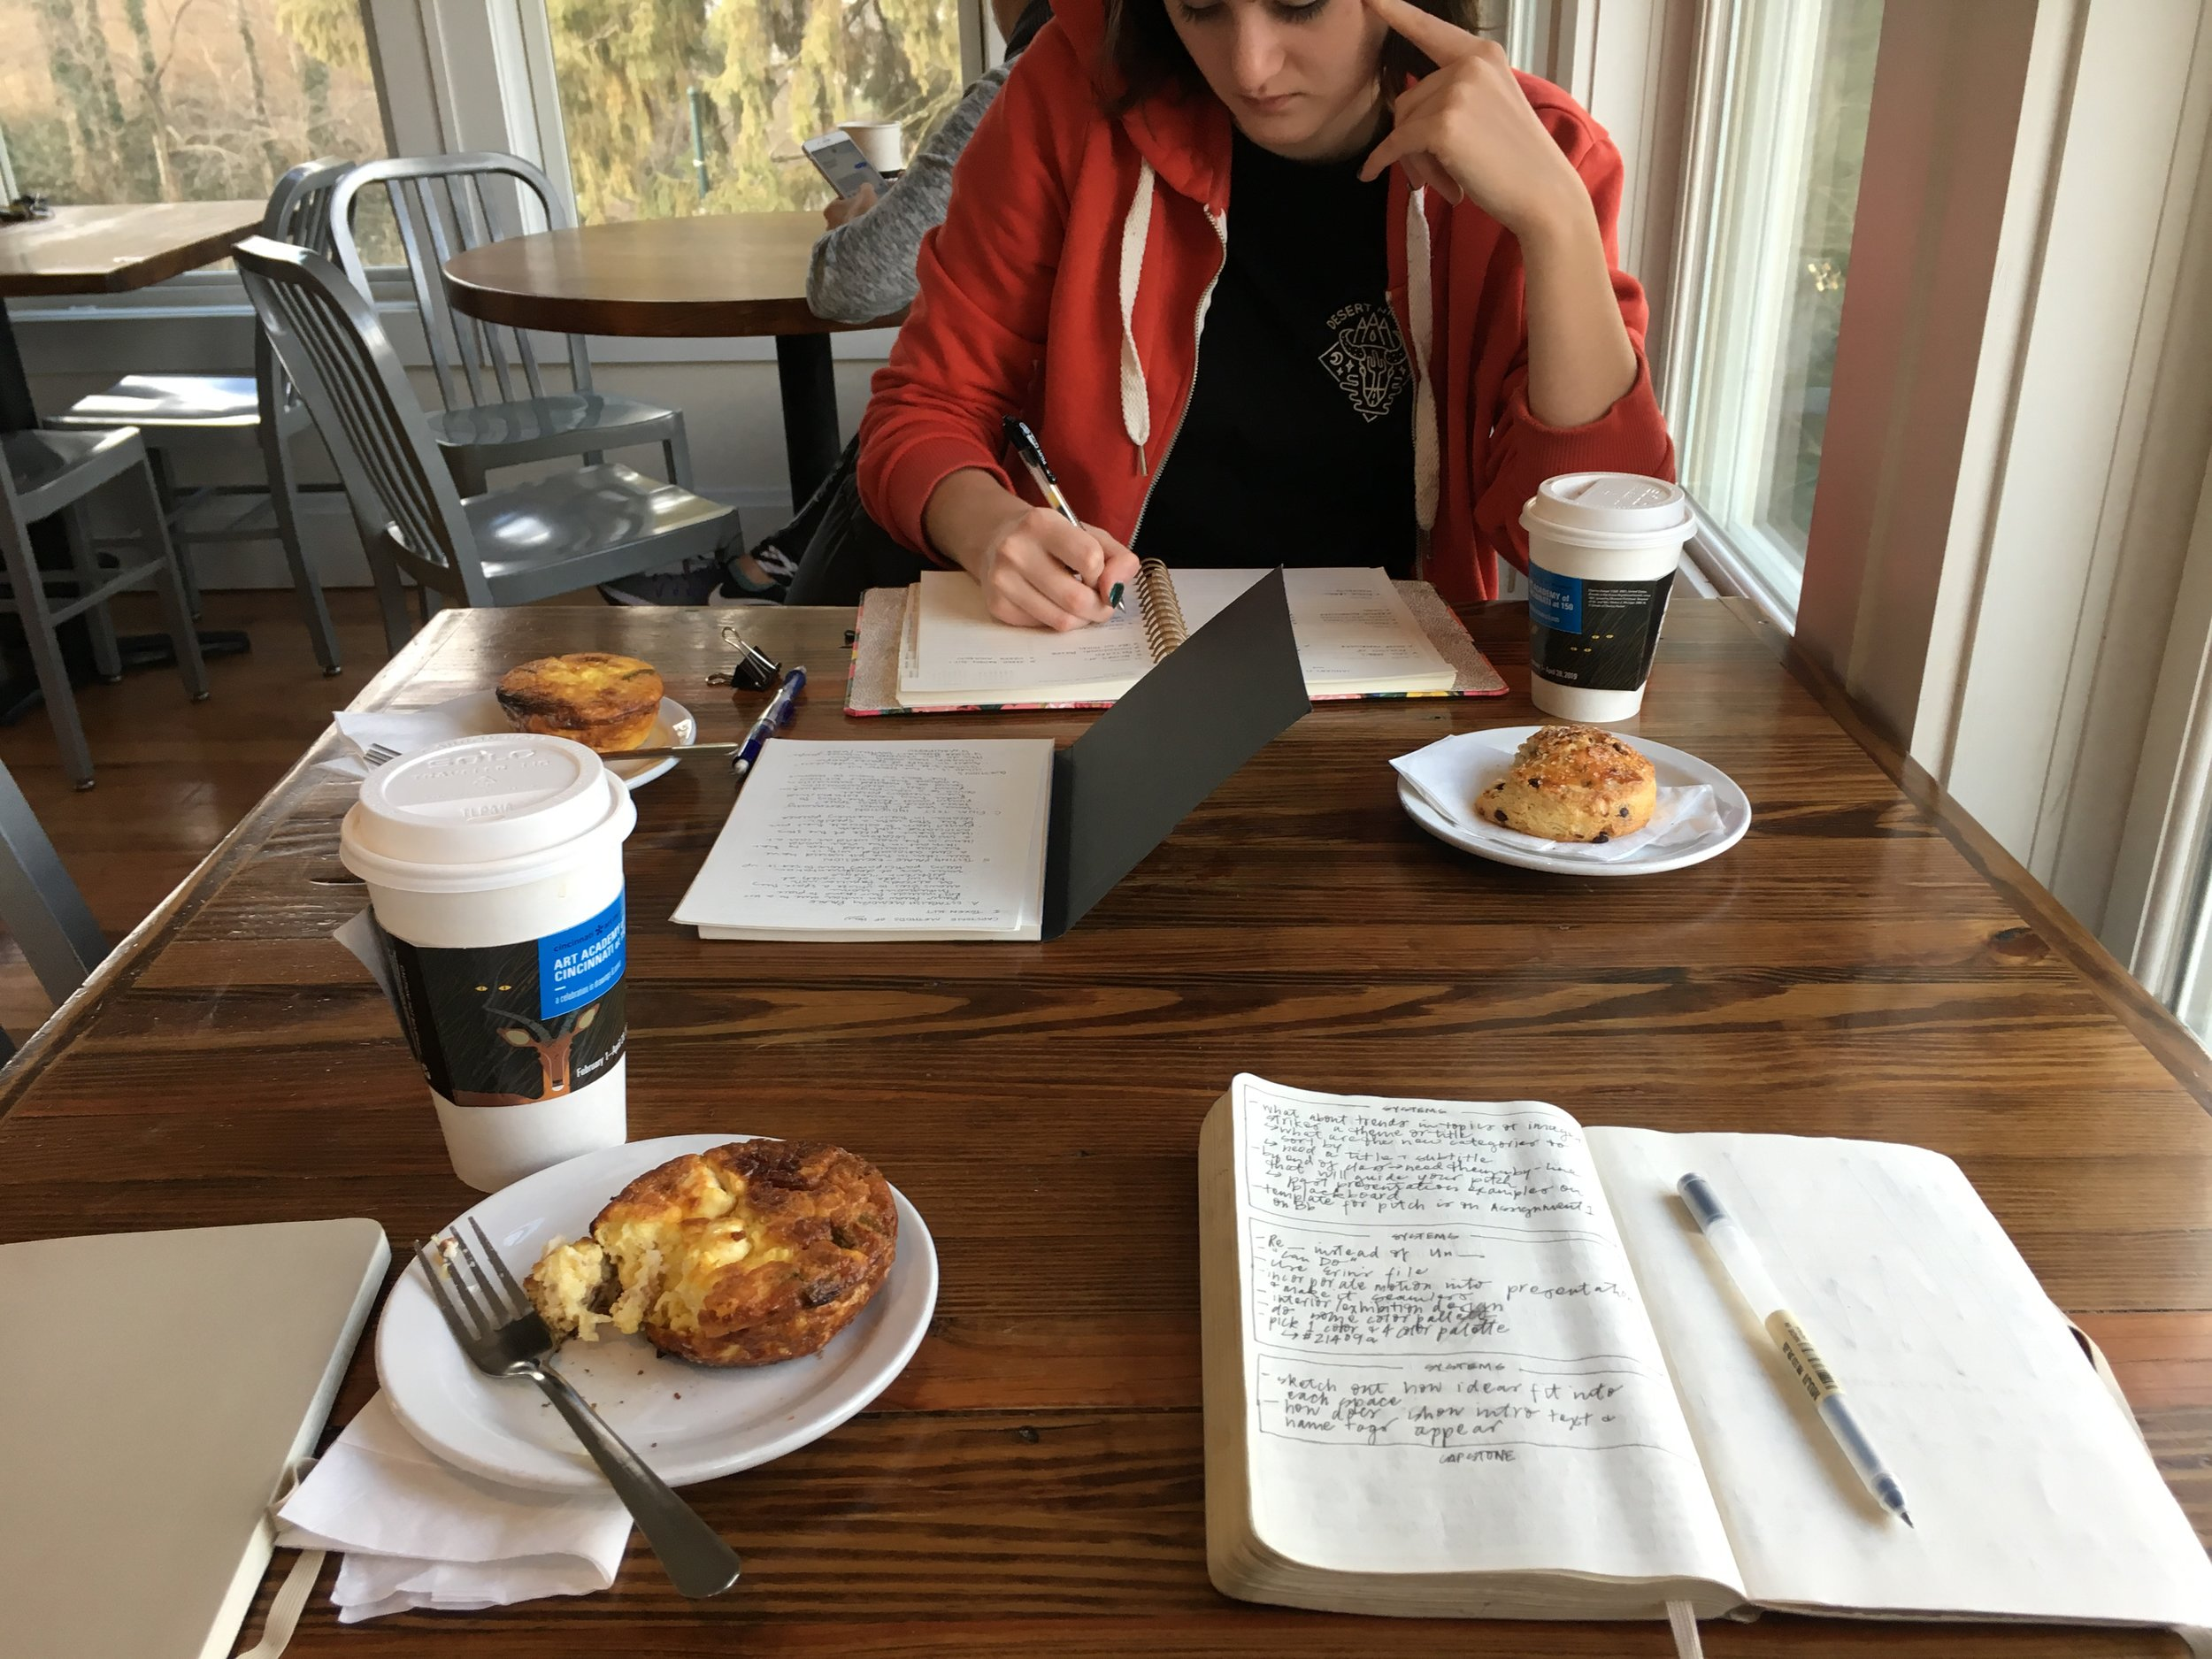 Did some work at Coffee Emporium with my pal, Katy. We talked through our ideas and did some analog work before doing more digital work.